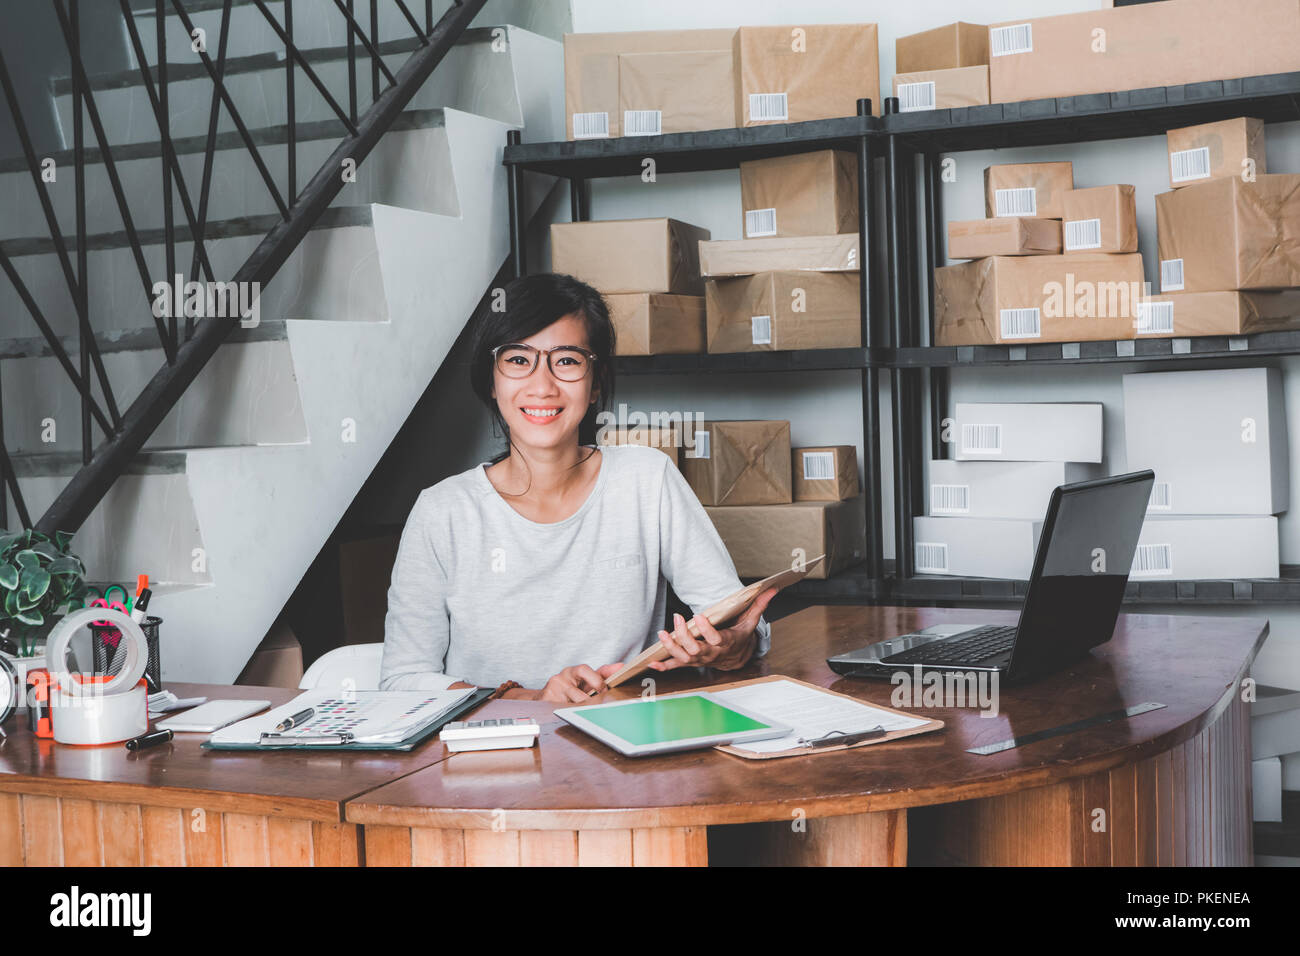 package delivery service office - Stock Image